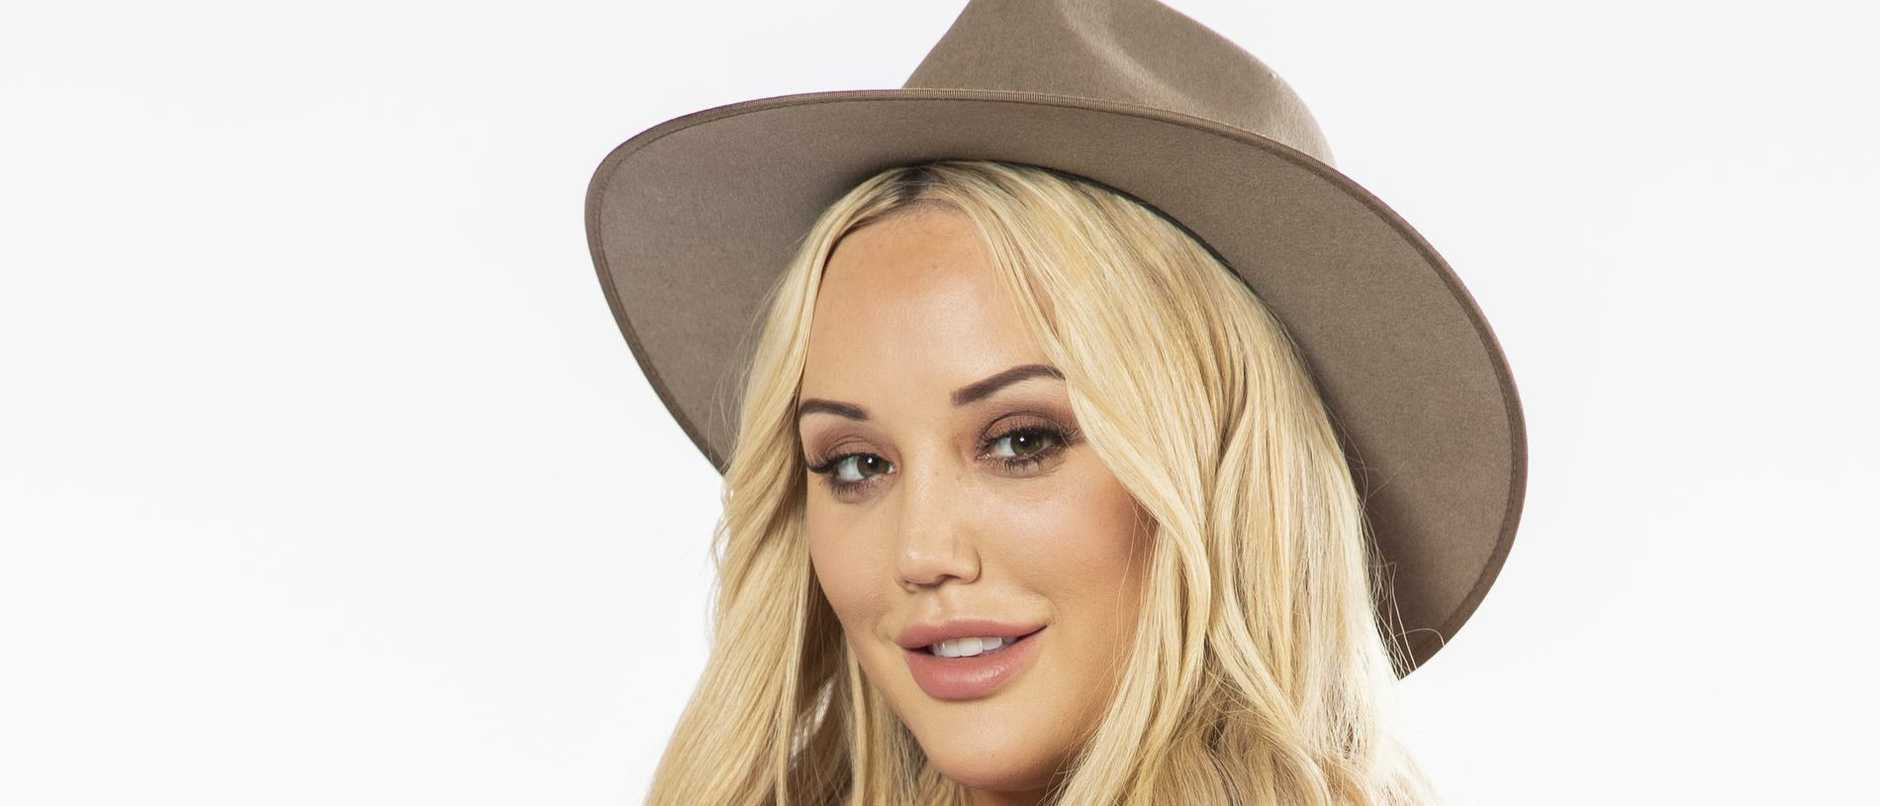 UK reality star Charlotte Crosby is rumoured to have negotiated a $1 million fee to appear on Channel 10's I'm a Celebrity … Get Me Out Of Here!